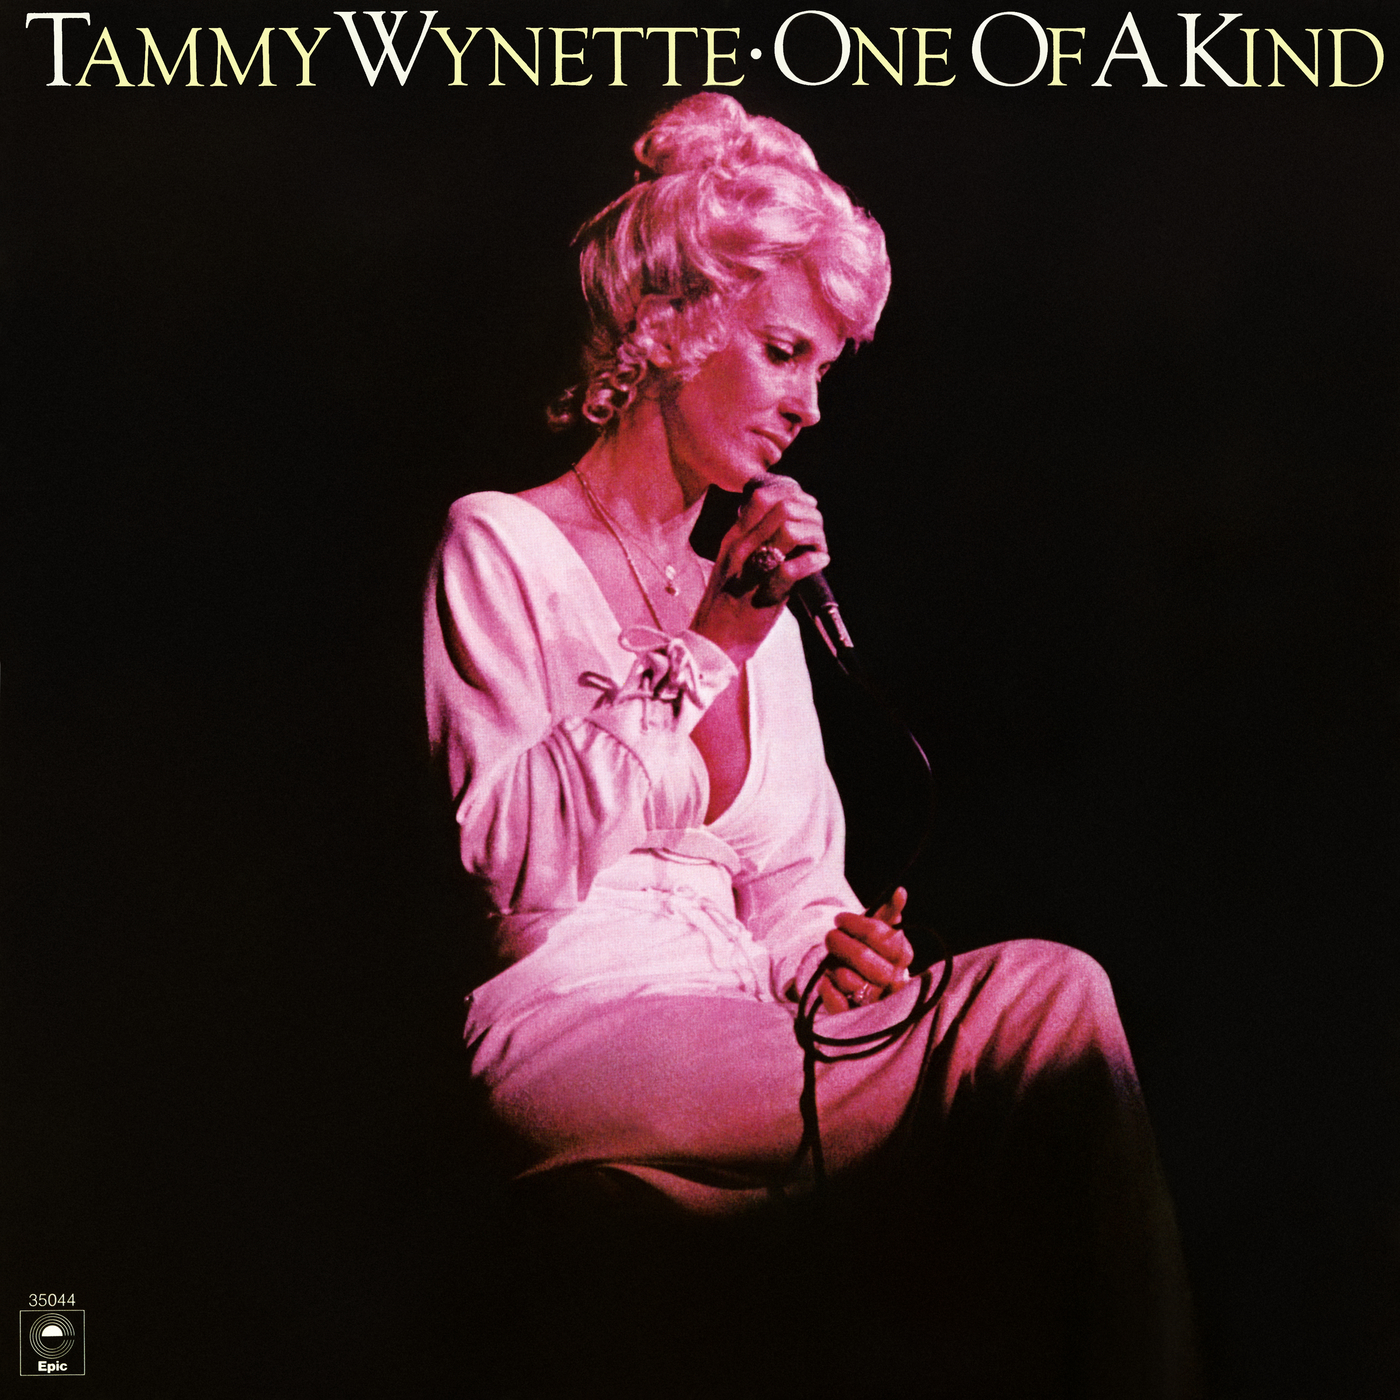 One of a Kind - Tammy Wynette